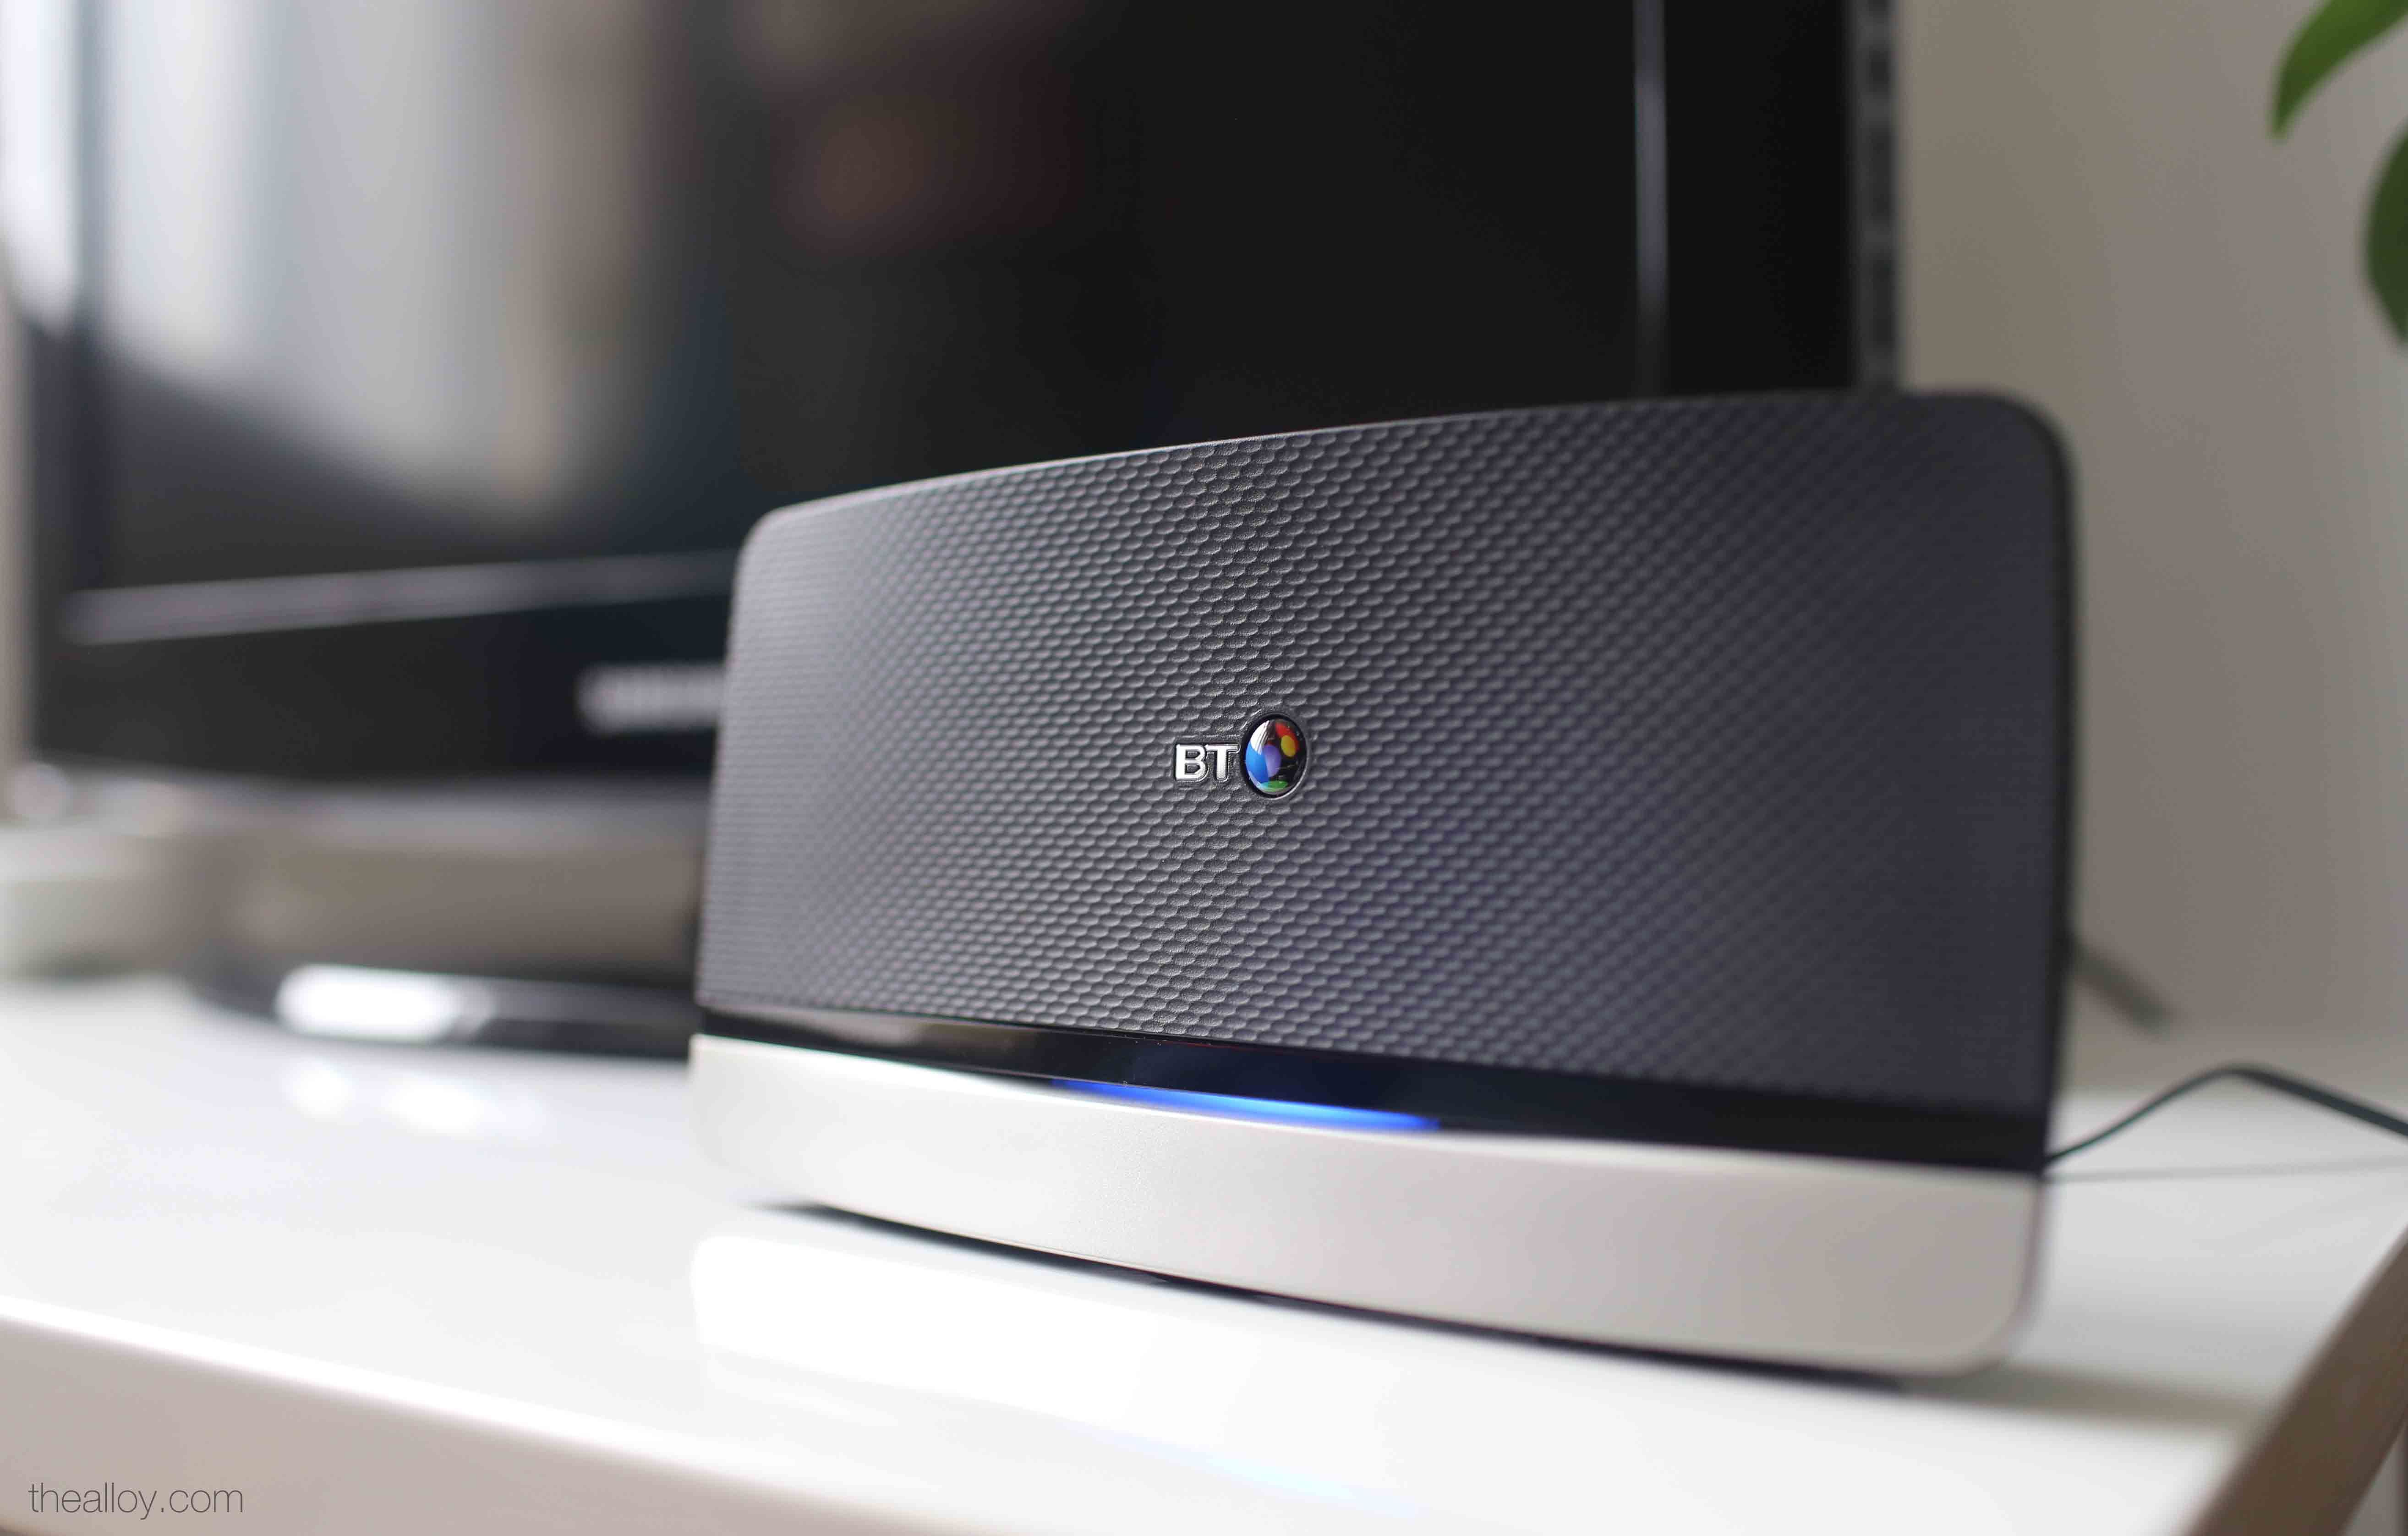 The Latest Bt Hub 4 Designed By The Alloy In Collaboration With Bt Reward Card Broadband Design